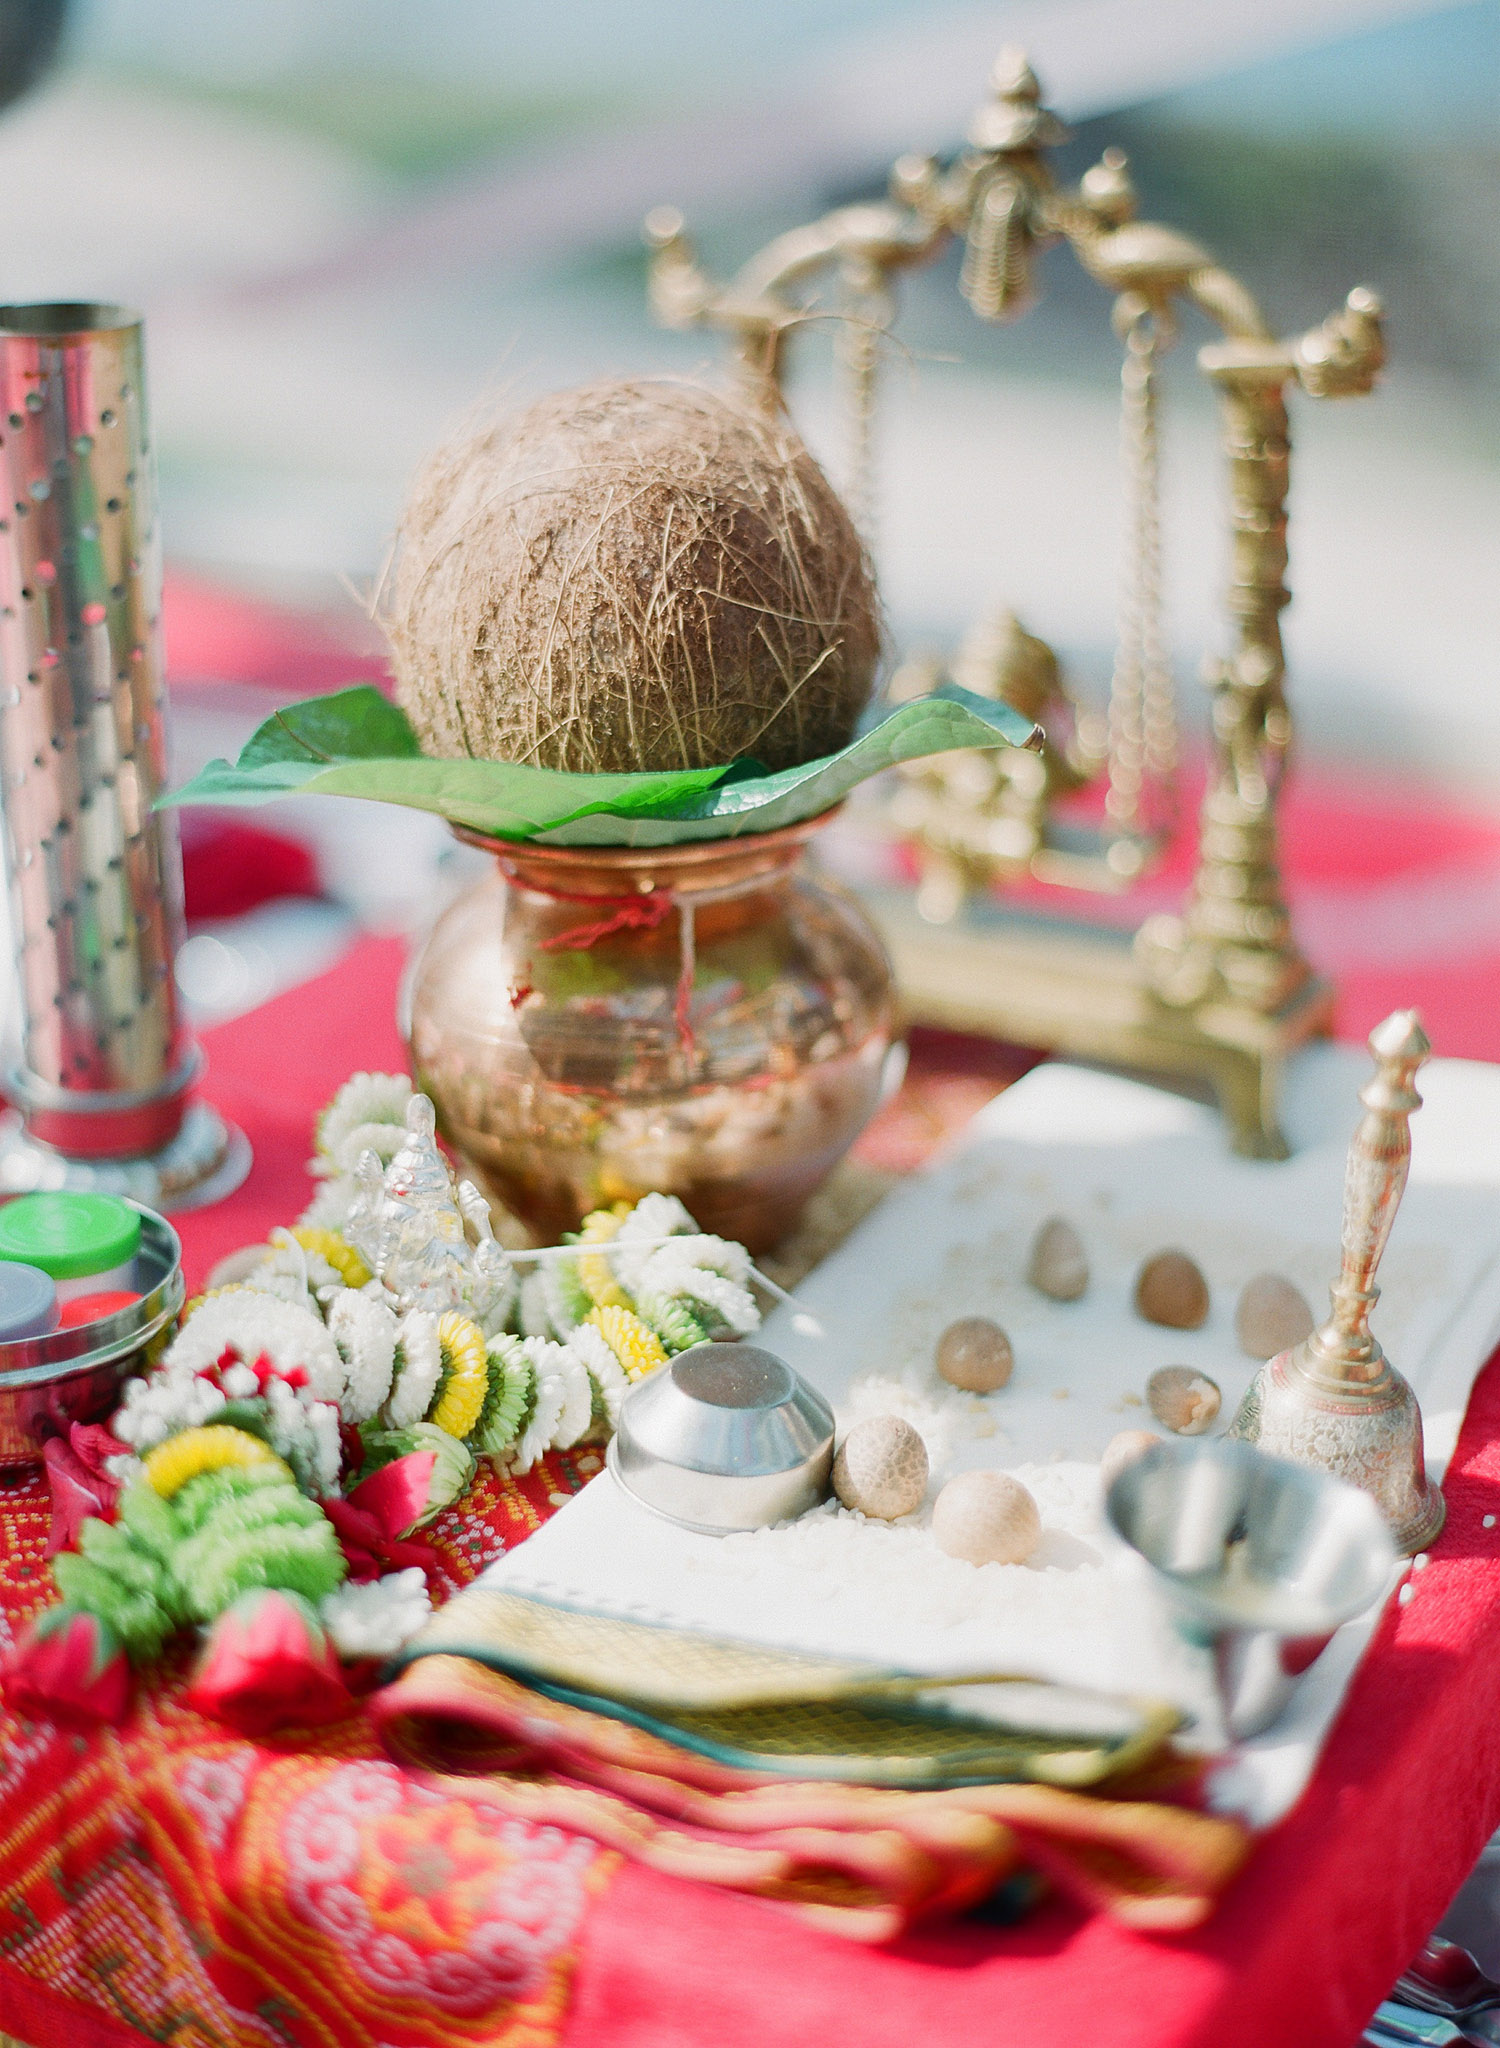 hindu ceremony items for the pithi ceremony at this indian wedding in Palm Coast Florida at the hammock beach resort planned by Reveology Events and photographed by Destination Wedding Photographer Lexia Frank, a top indian wedding photographer who photographs indian weddings on film, a film photographer for indian weddings, shooting luxury indian weddings in florida and worldwide